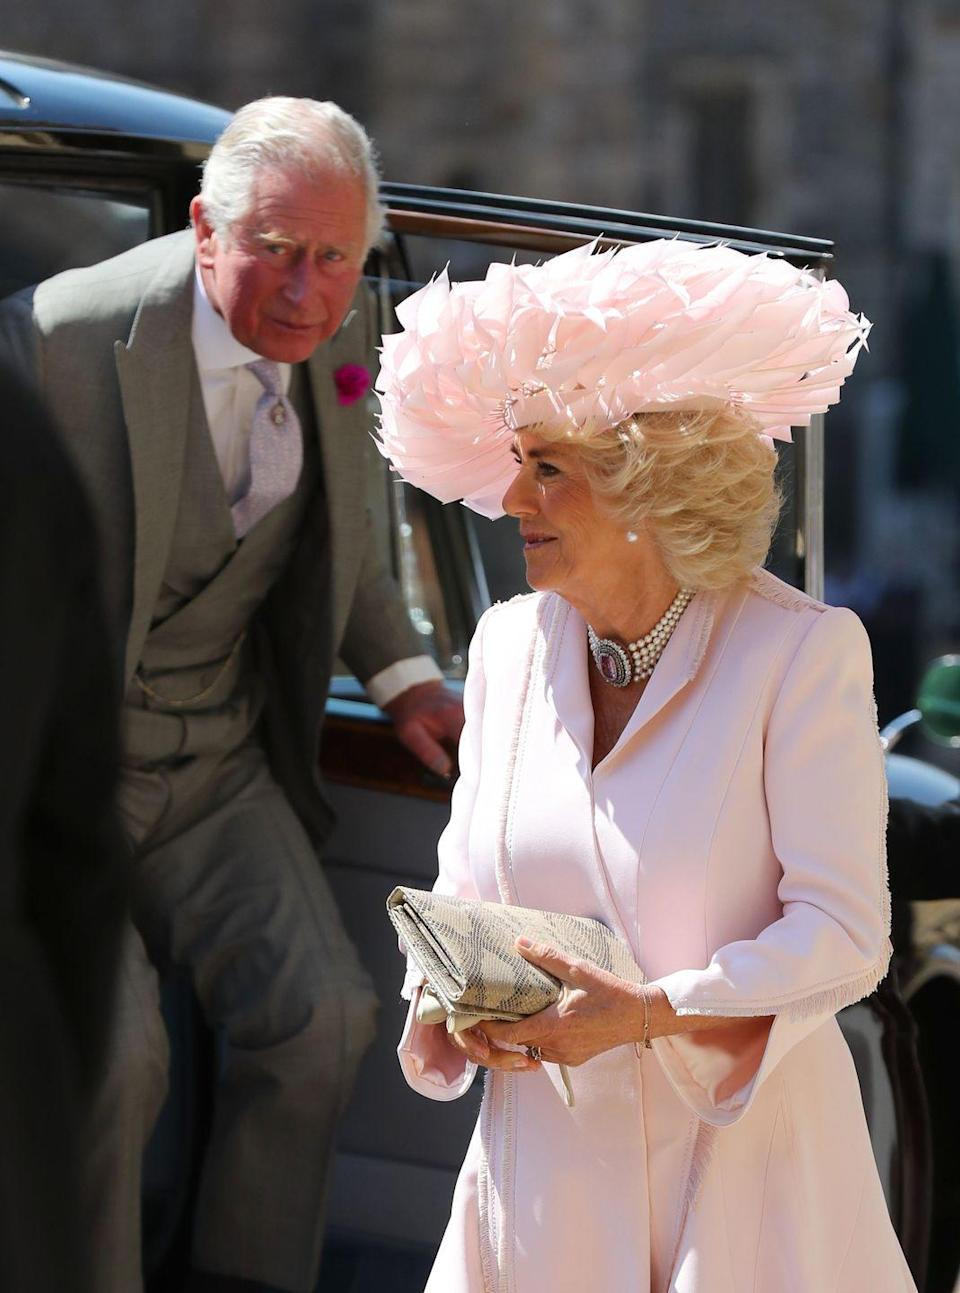 <p>The Duchess of Cornwall's five-strand pearl choker with a huge pink topaz at the center is believed to be a gift from Prince Charles. She wore the piece for the wedding of her stepson, Prince Harry, to Meghan Markle. Camilla is believed to be fond of chokers and wears them regularly.</p>